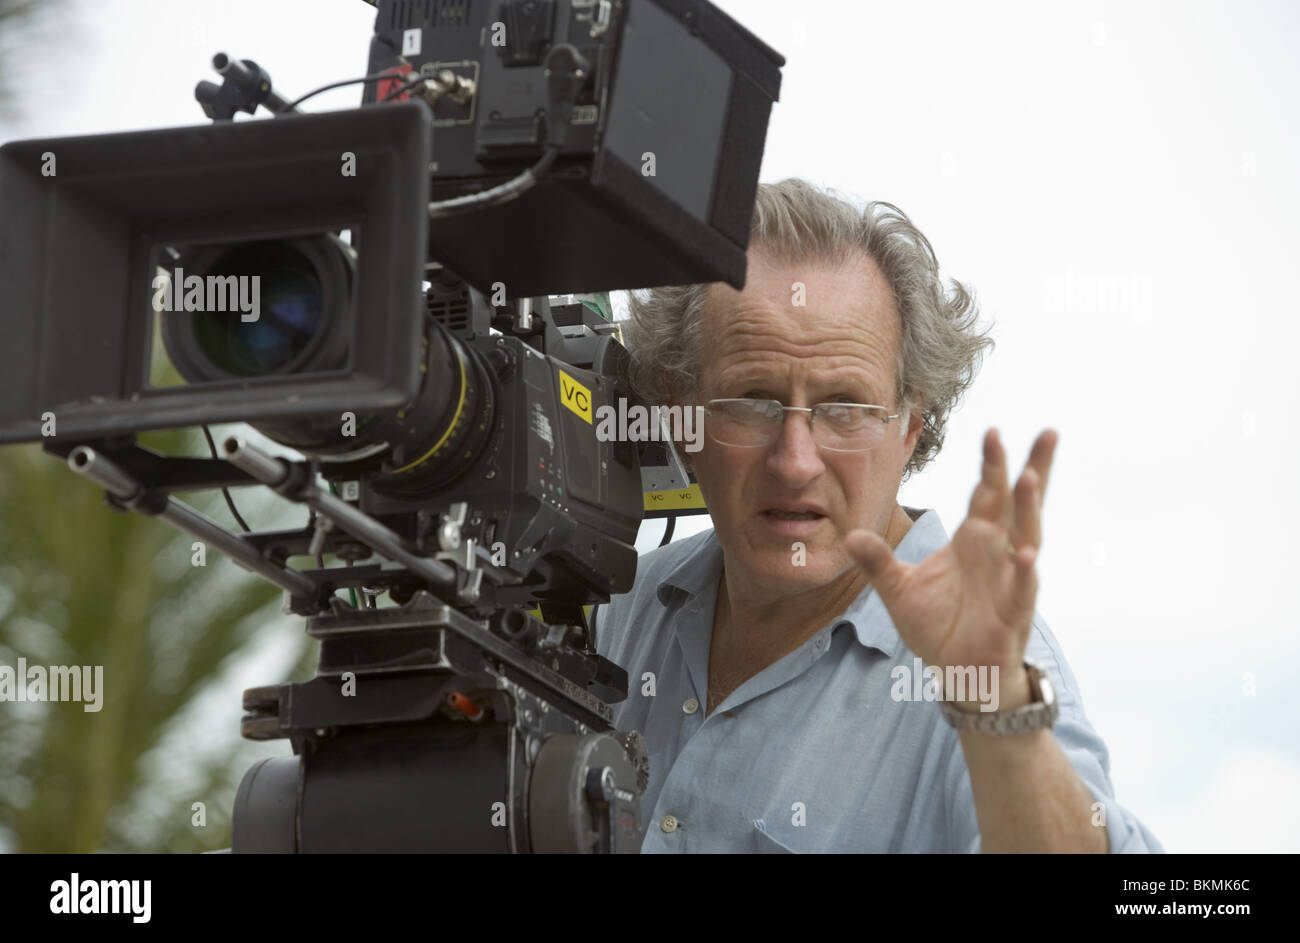 ON SET (ALT) FILMING (ALT) BEHIND THE SCENES (ALT) O/S 'MIAMI VICE' (2006) WITH MICHAEL MANN (DIR) MIMV - Stock Image